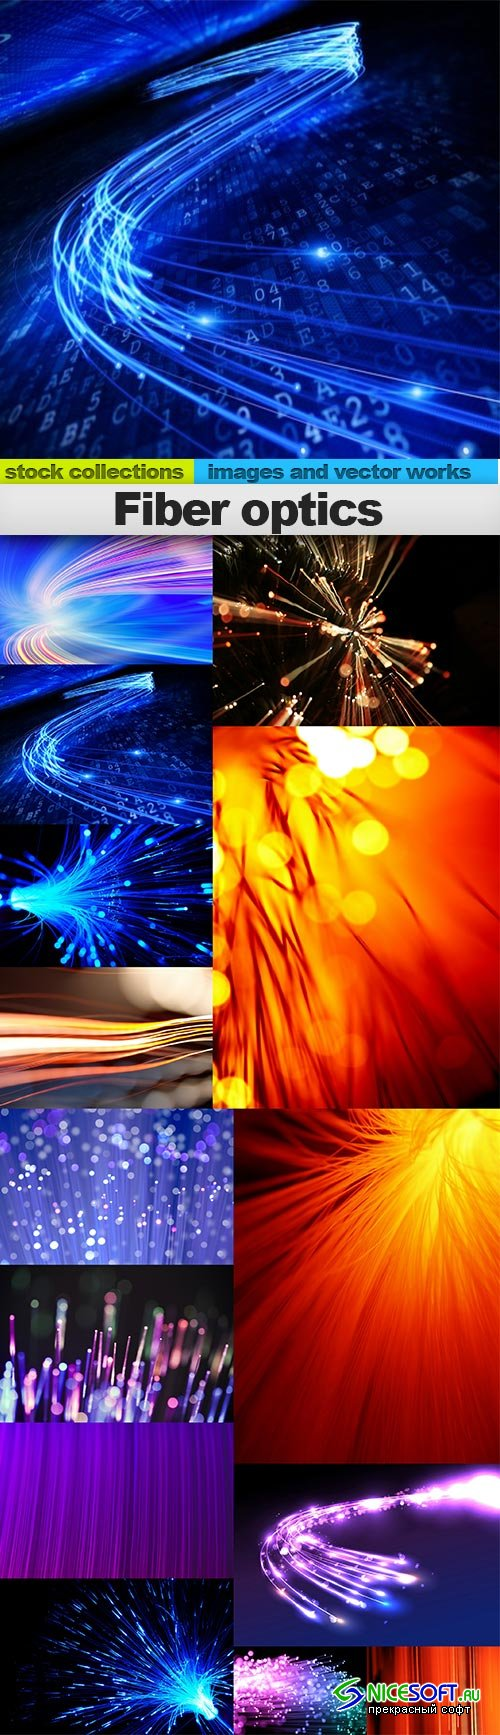 Fiber optics, 14 x UHQ JPEG